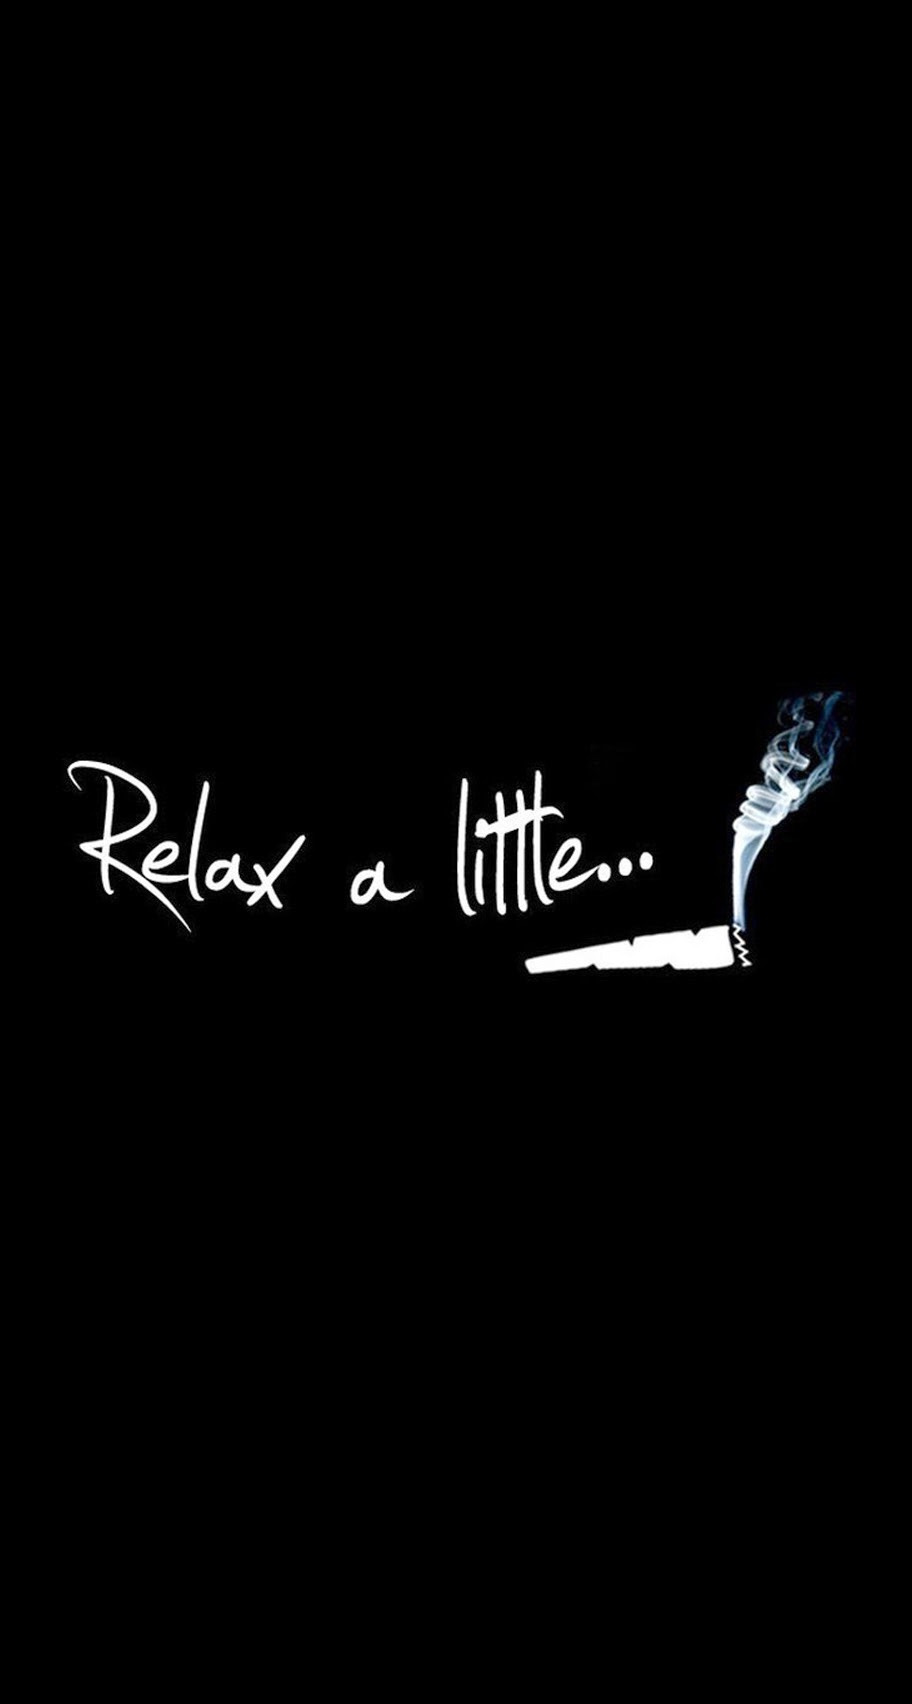 Mickey Mouse Smoking Weed Wallpaper